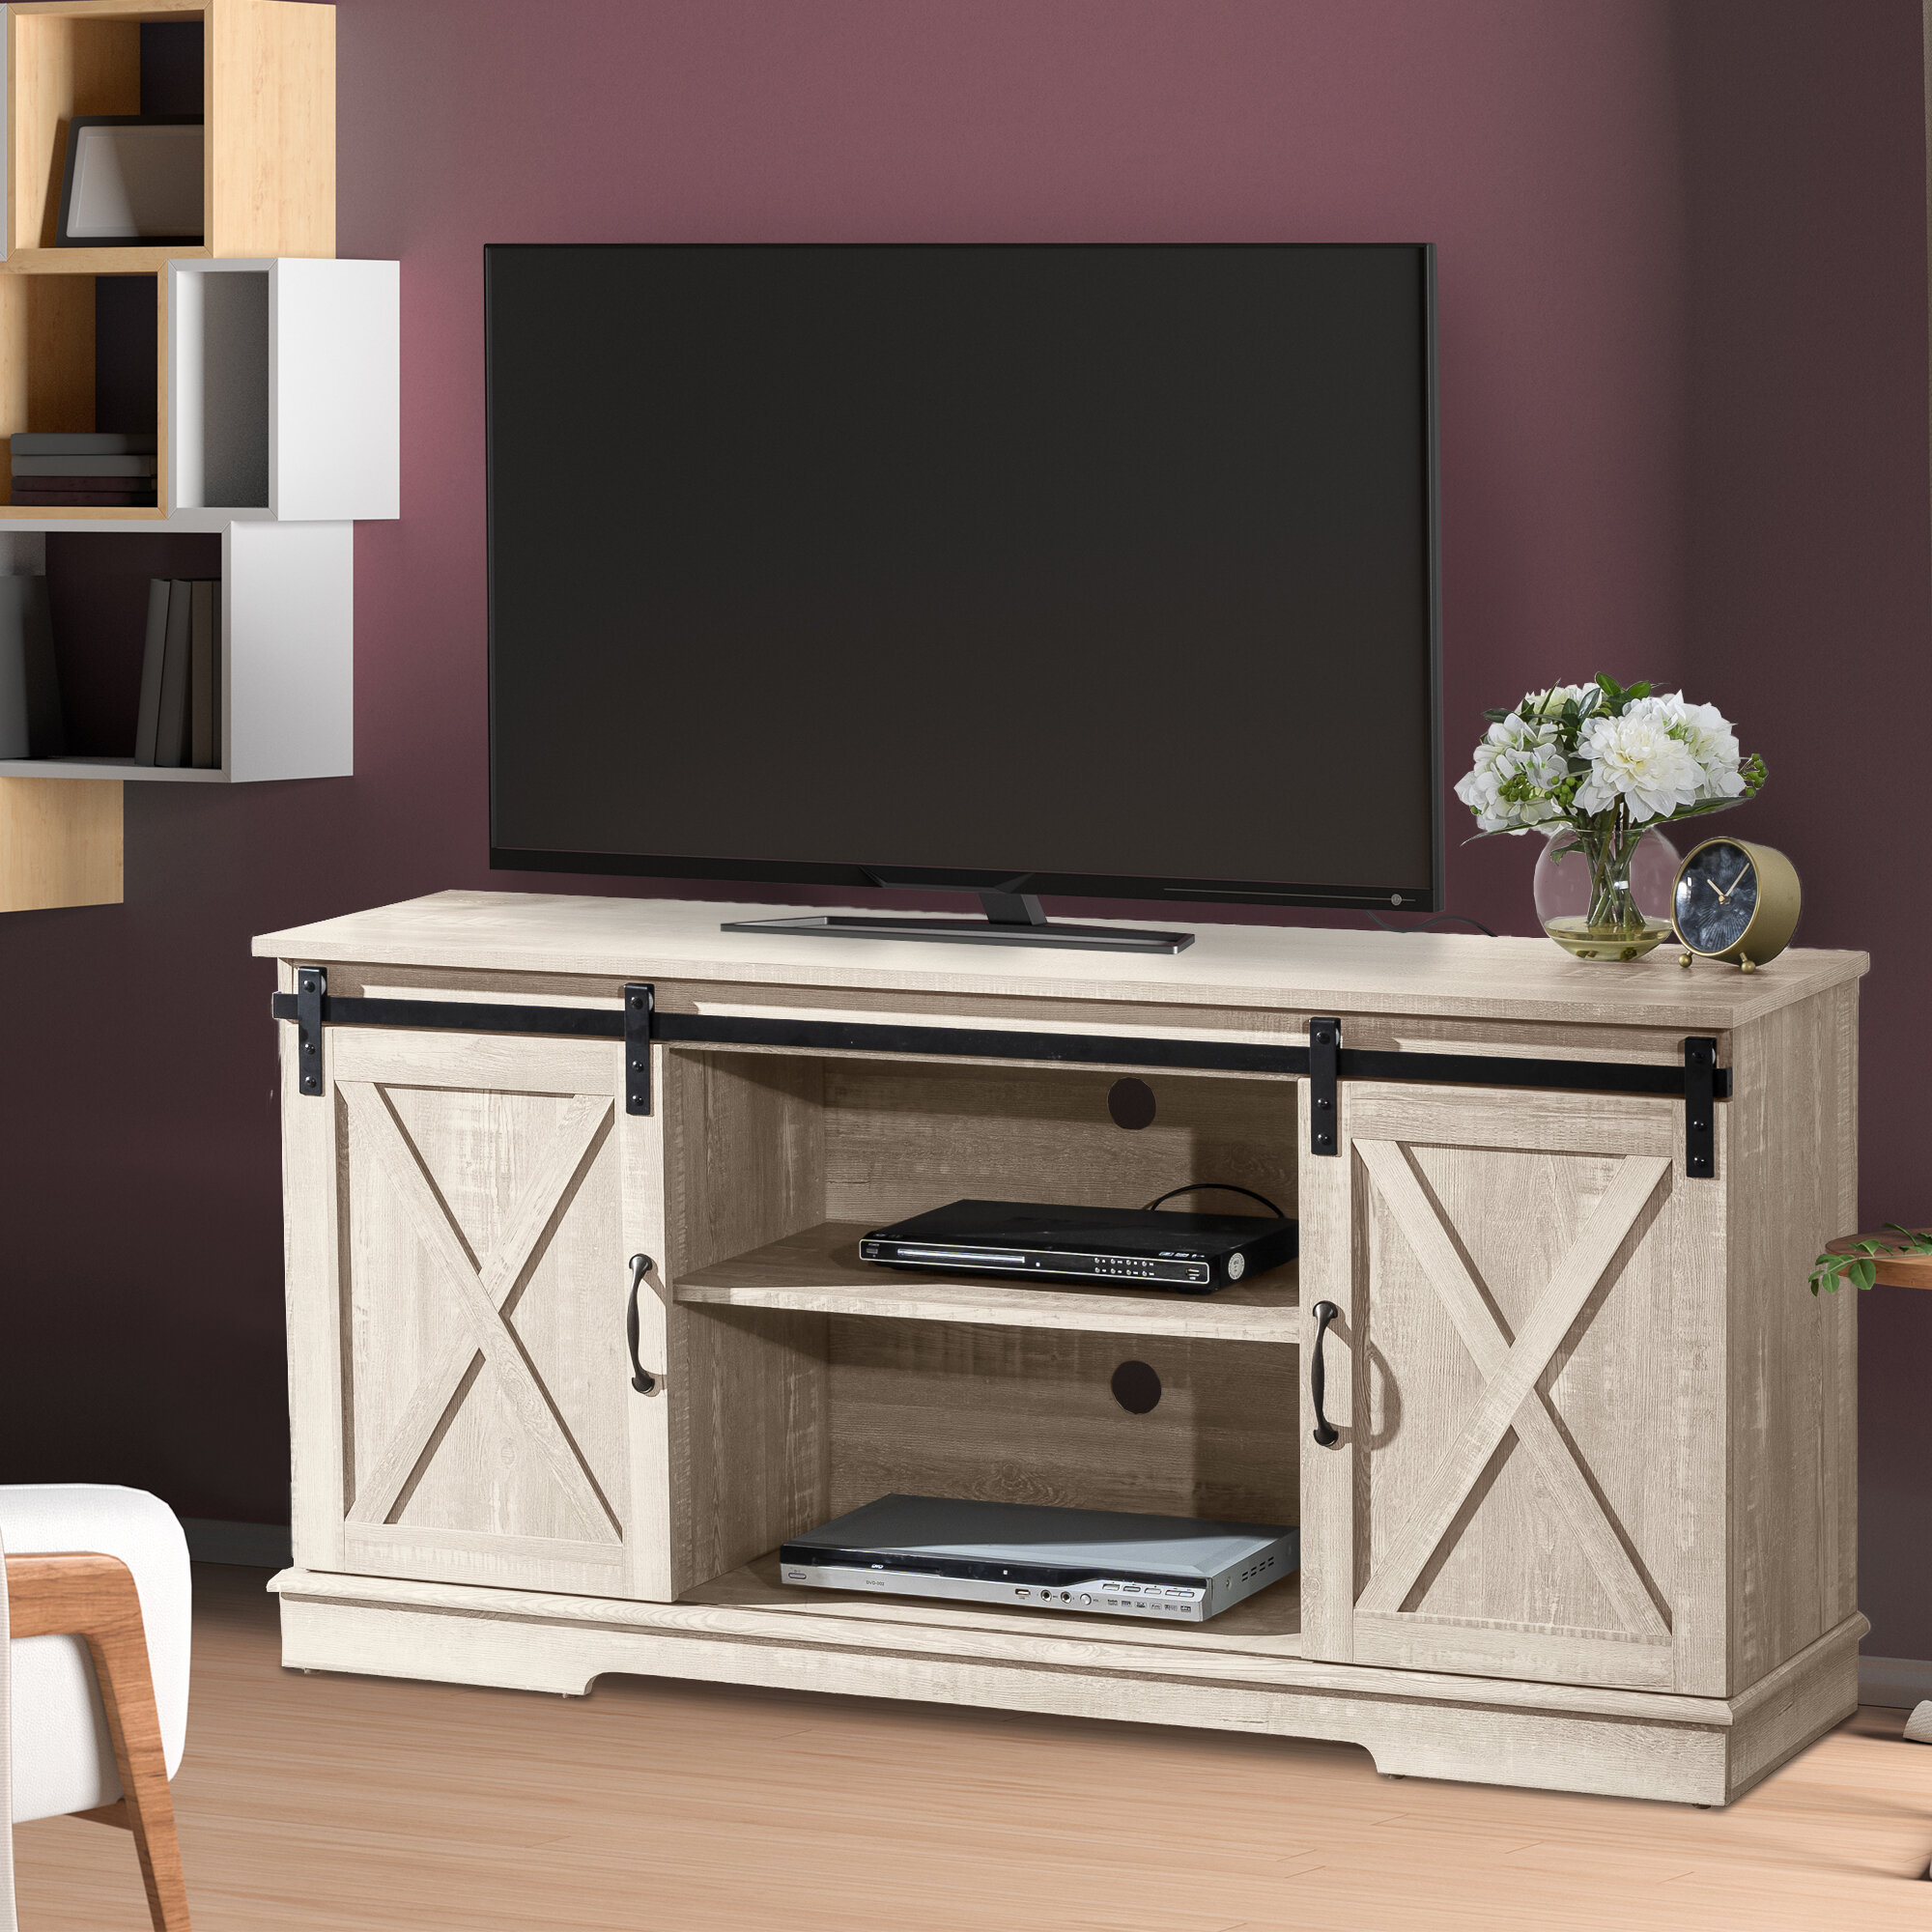 Gracie Oaks Berne Tv Stand For Tvs Up To 65 Reviews Wayfair